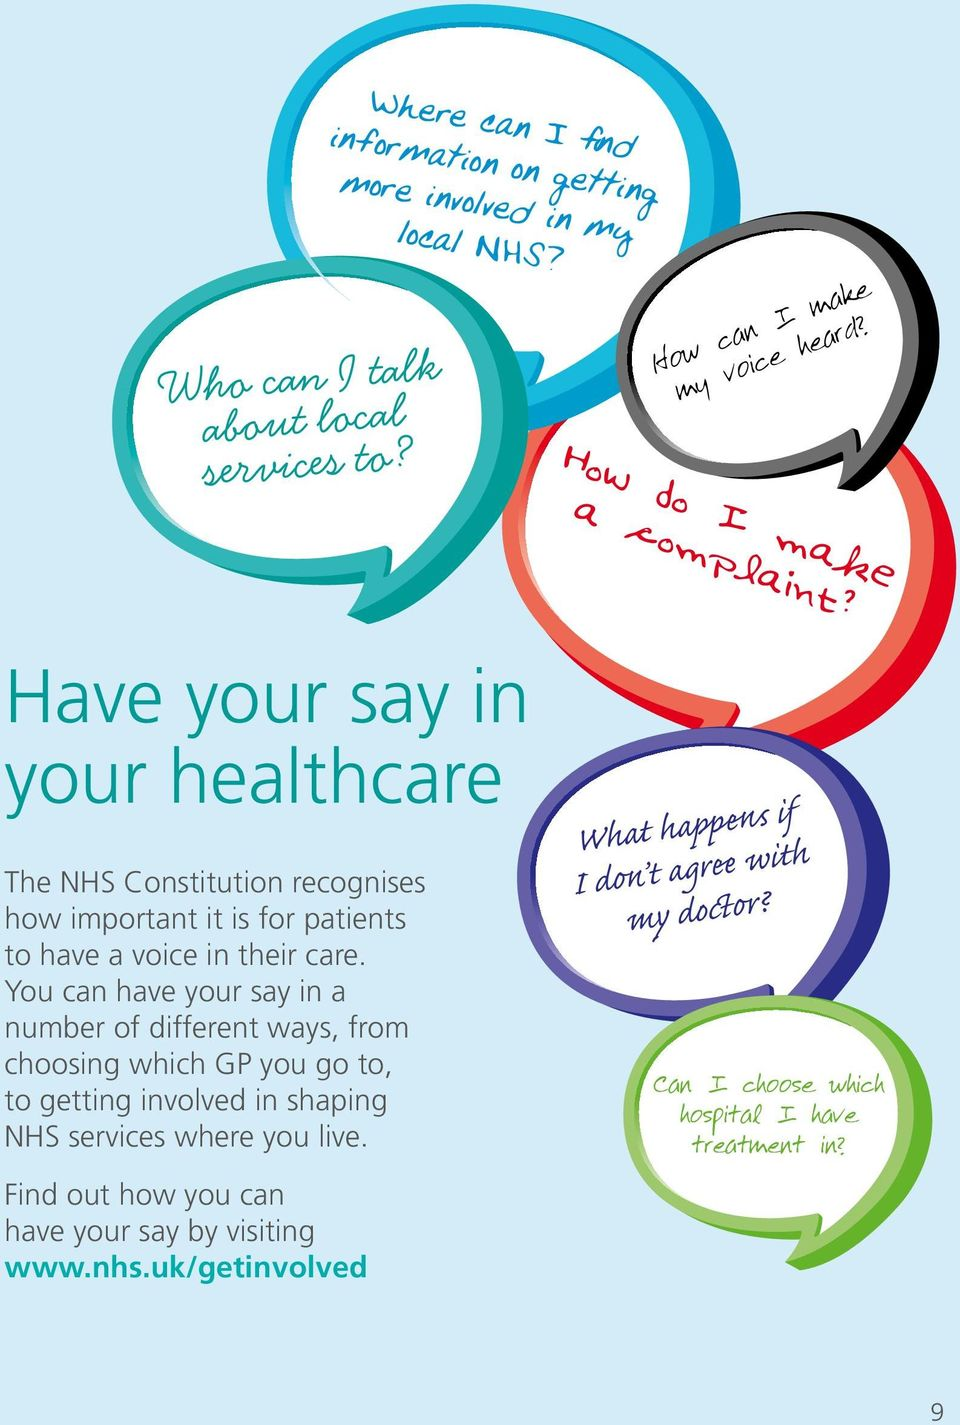 Have your say in your healthcare The NHS Constitution recognises how important it is for patients to have a voice in their care.